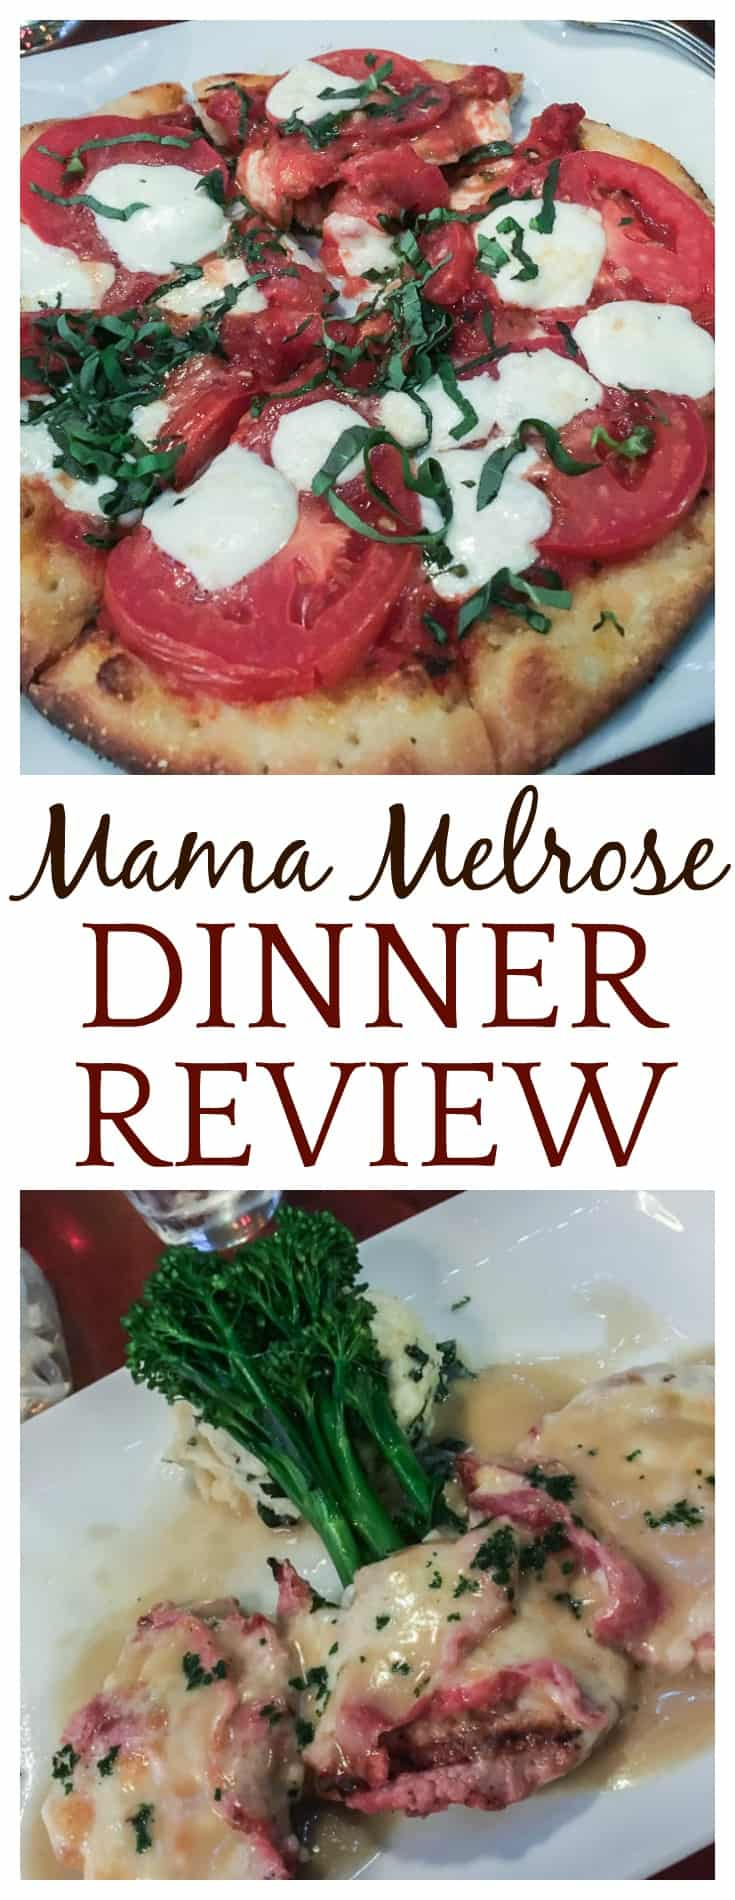 This Mama Melrose dinner review is based on my experience when visiting the restaurant in November 2017 with my family   #disneydining #disneyworld #disneyrestaurants #restaurants #review #mamamelrose